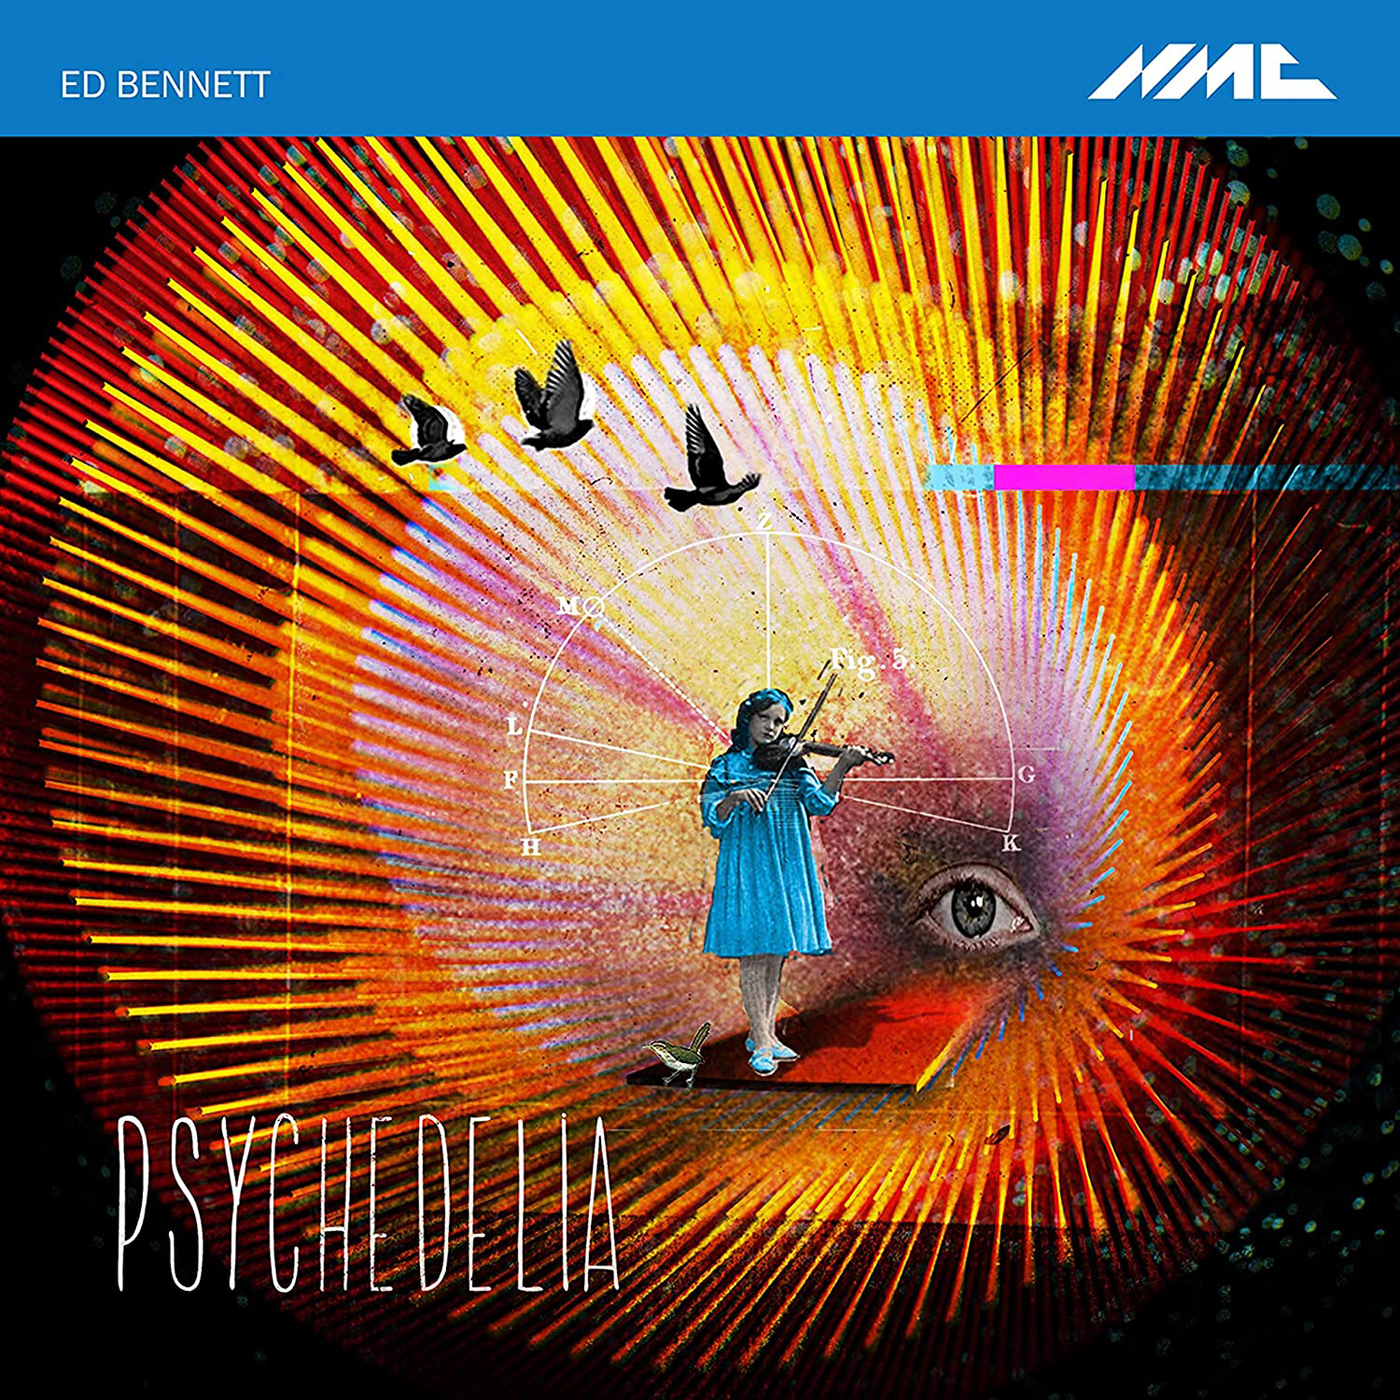 Ed Bennett - Psychedelia - Album cover